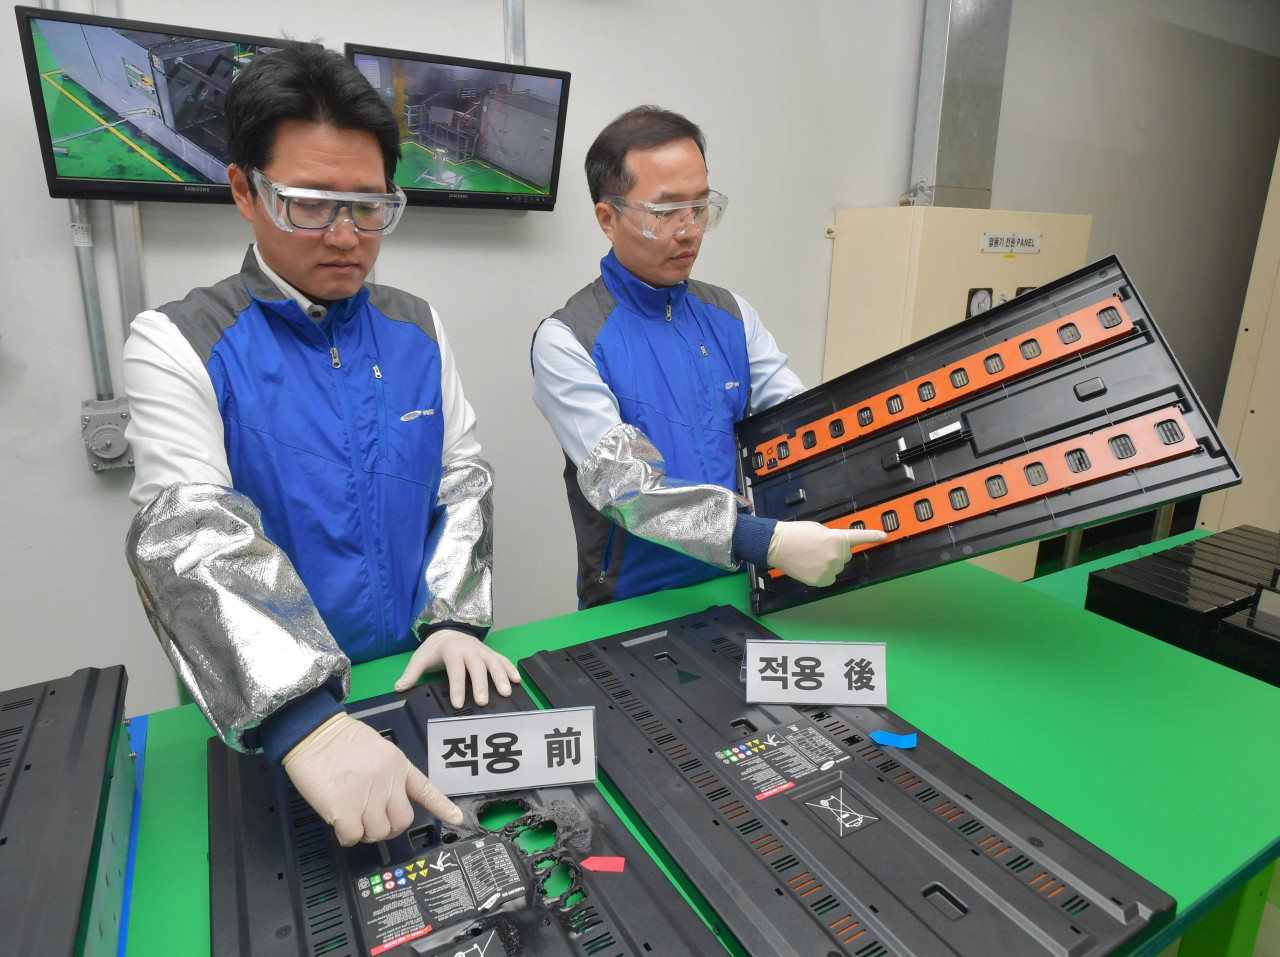 Samsung SDI officials demonstrate how the extinguishing system works at a test room at its Ulsan plant on Wednesday. (Samsung SDI)